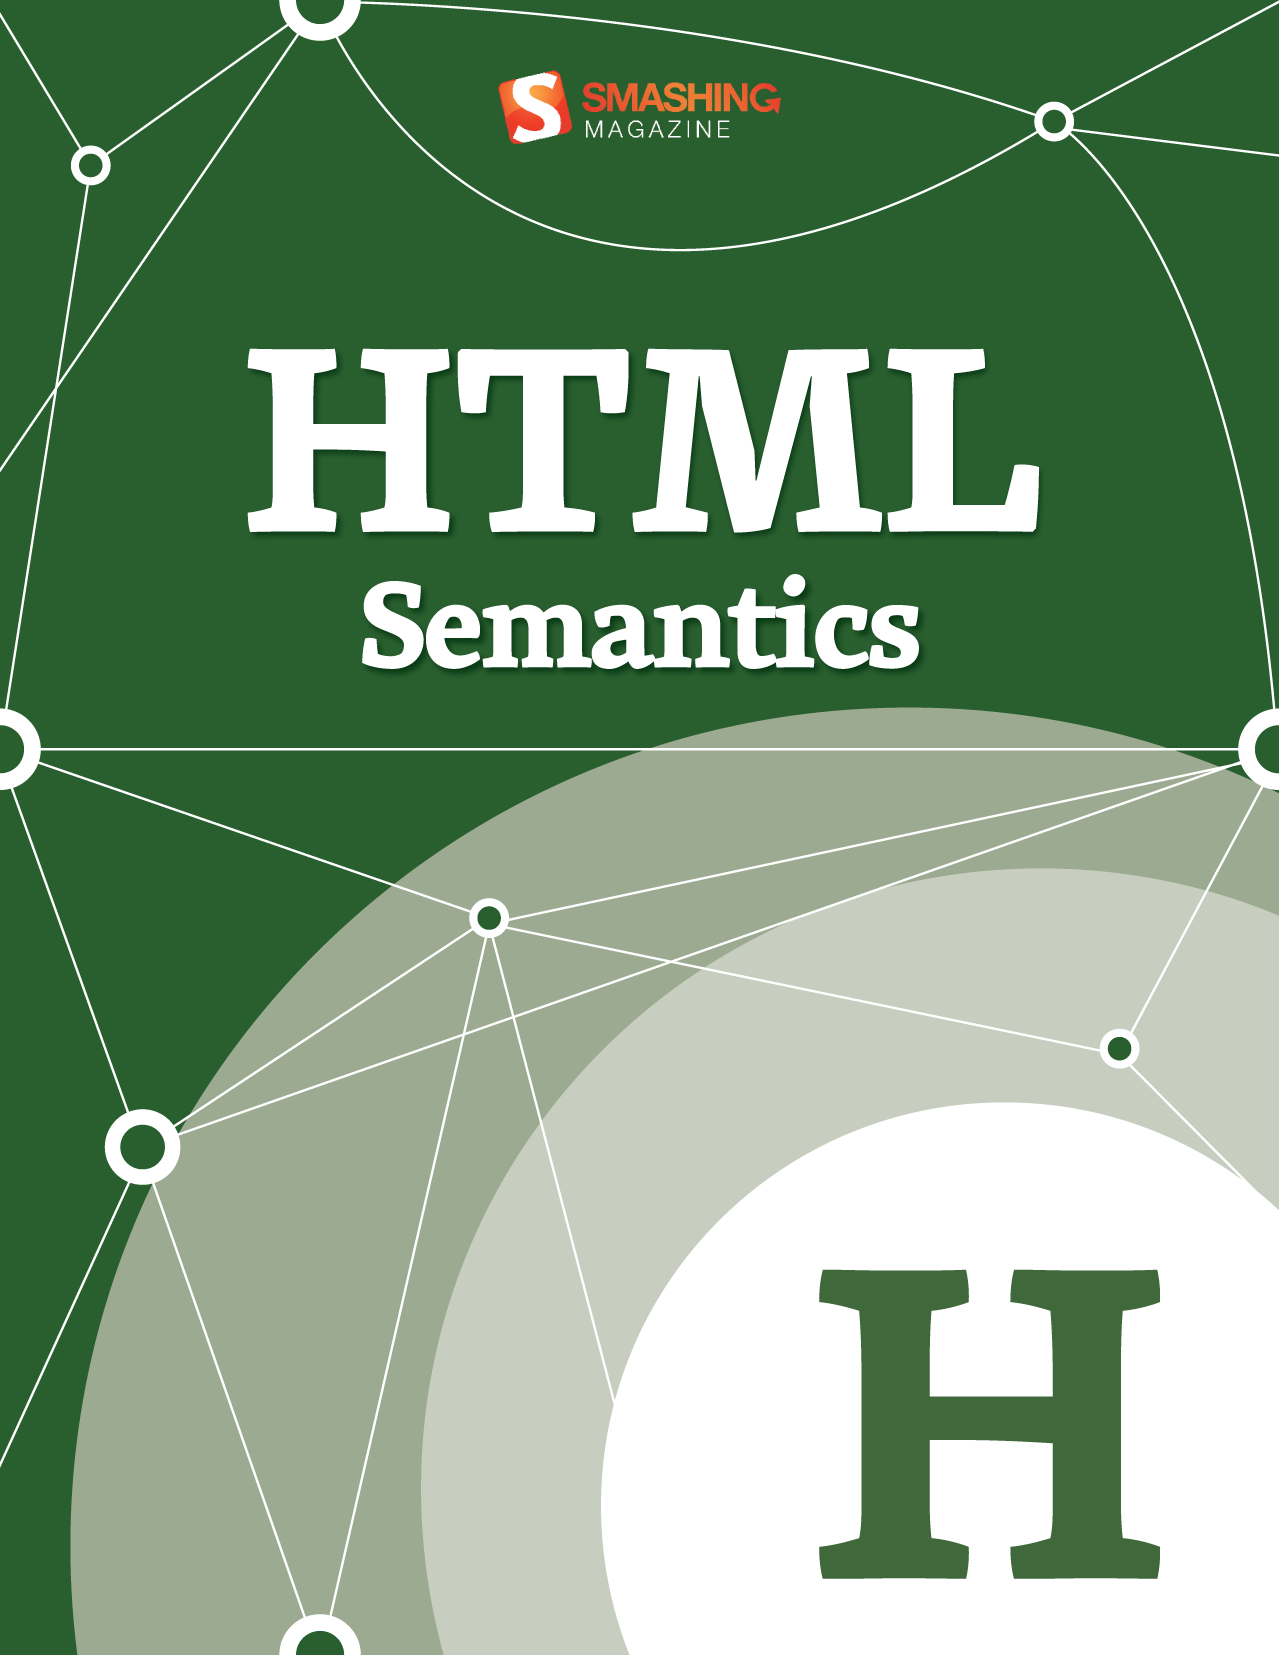 HTML Semantics By: Smashing Magazine